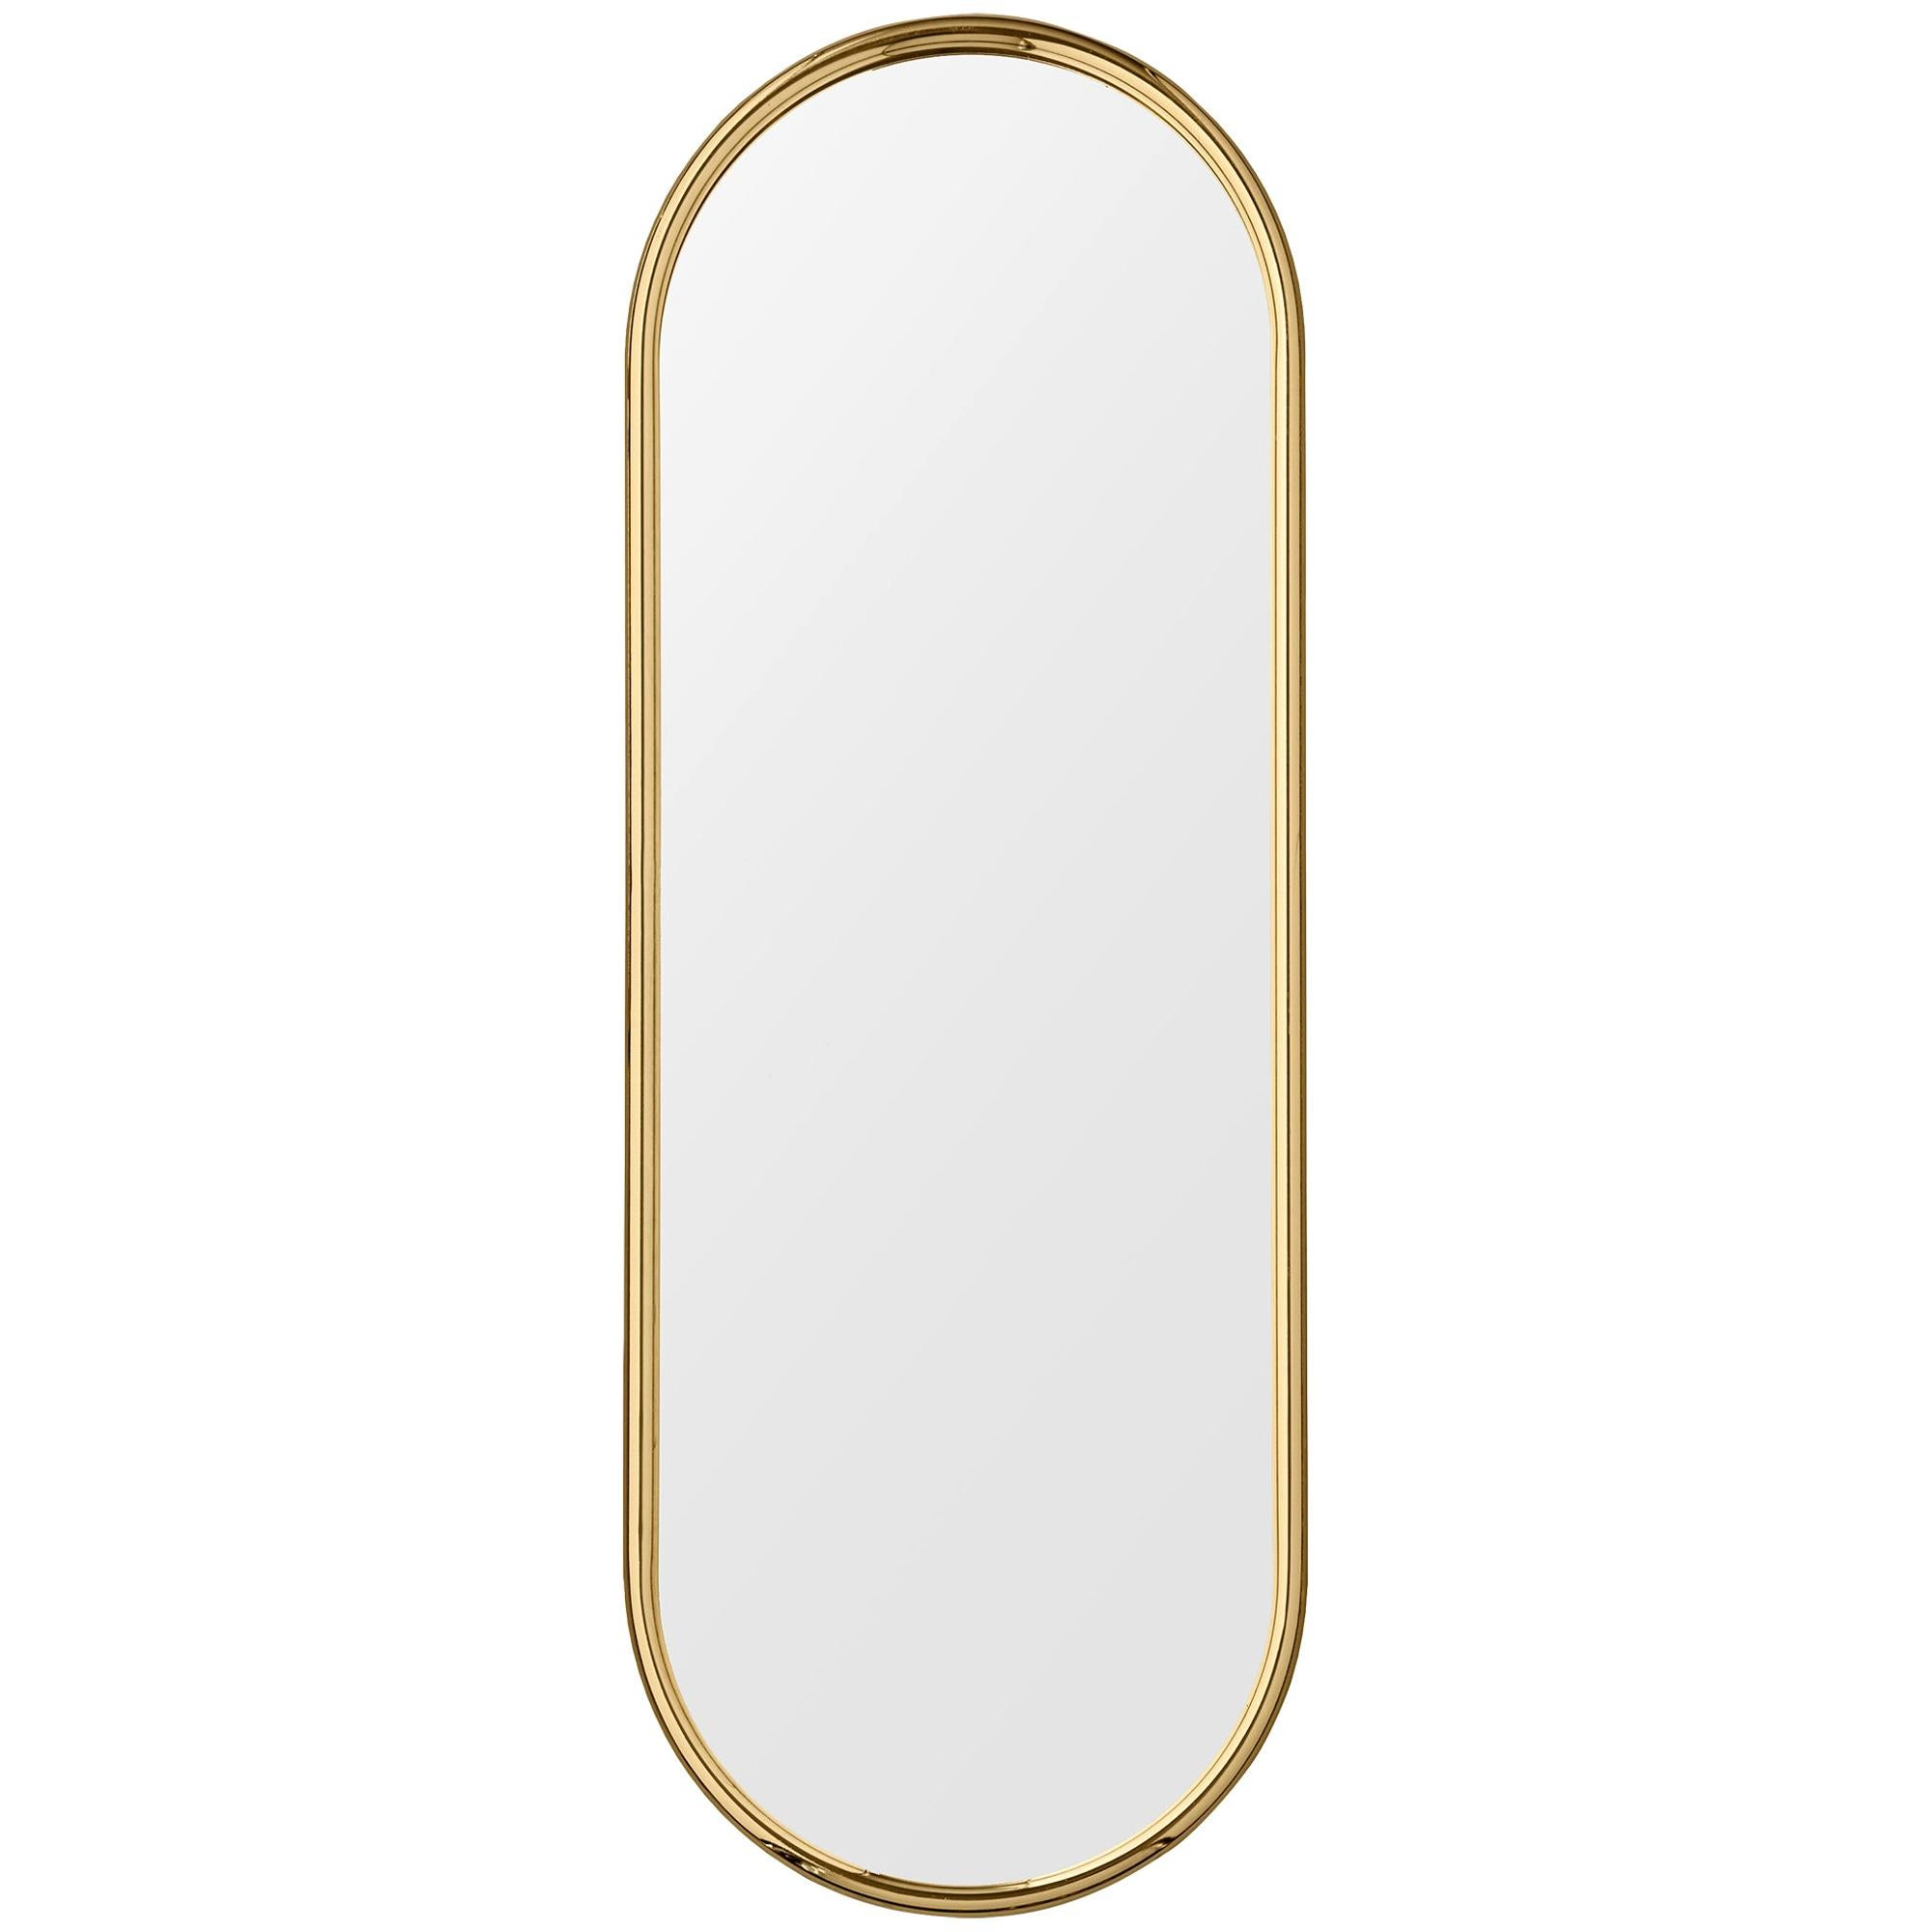 Angui Golden Oval Large Mirror